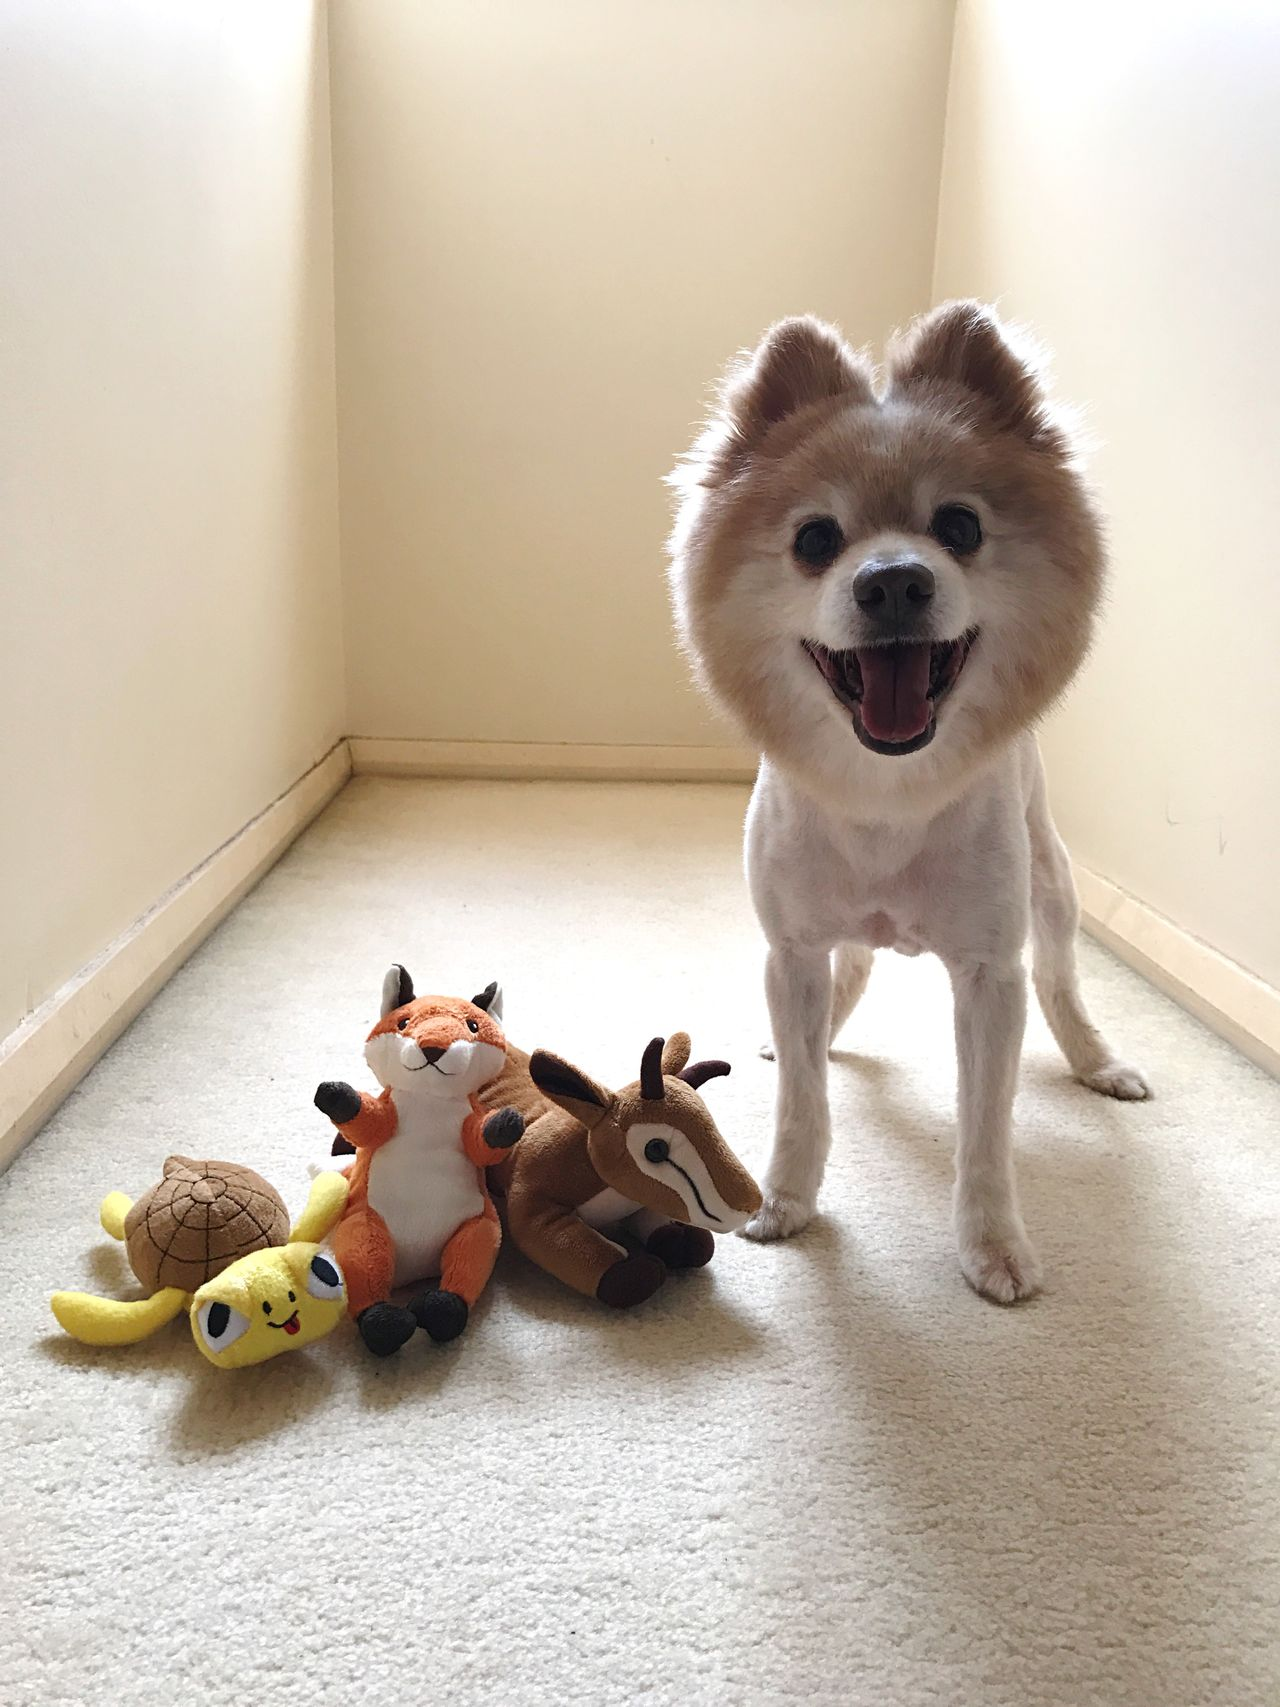 Pets Dog Domestic Animals Animal Themes Looking At Camera Home Interior Portrait Mammal Indoors  No People Full Length Stuffed Toy One Animal Day